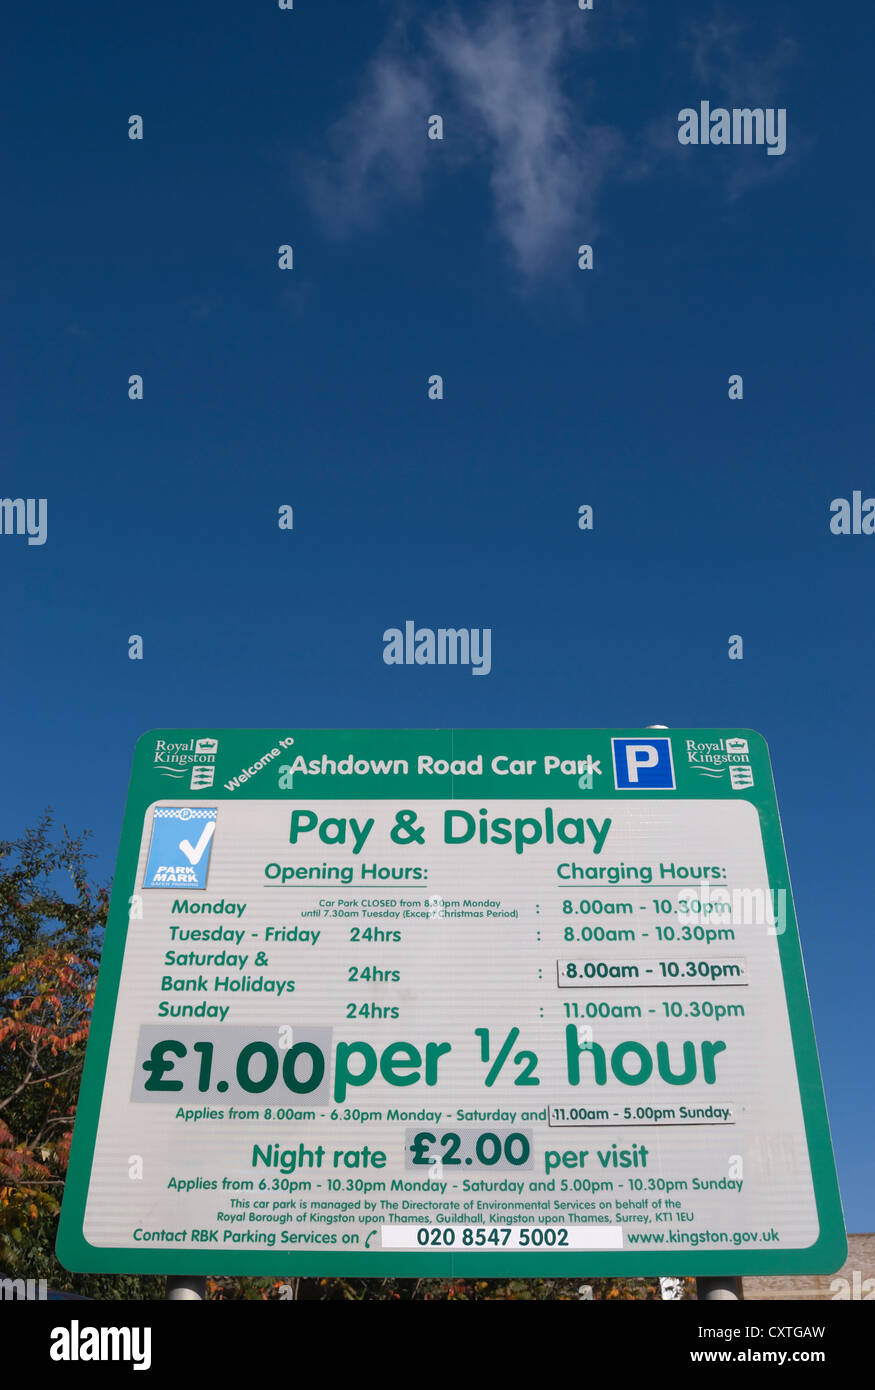 car park pay and display sign, kingston upon thames, surrey, england - Stock Image